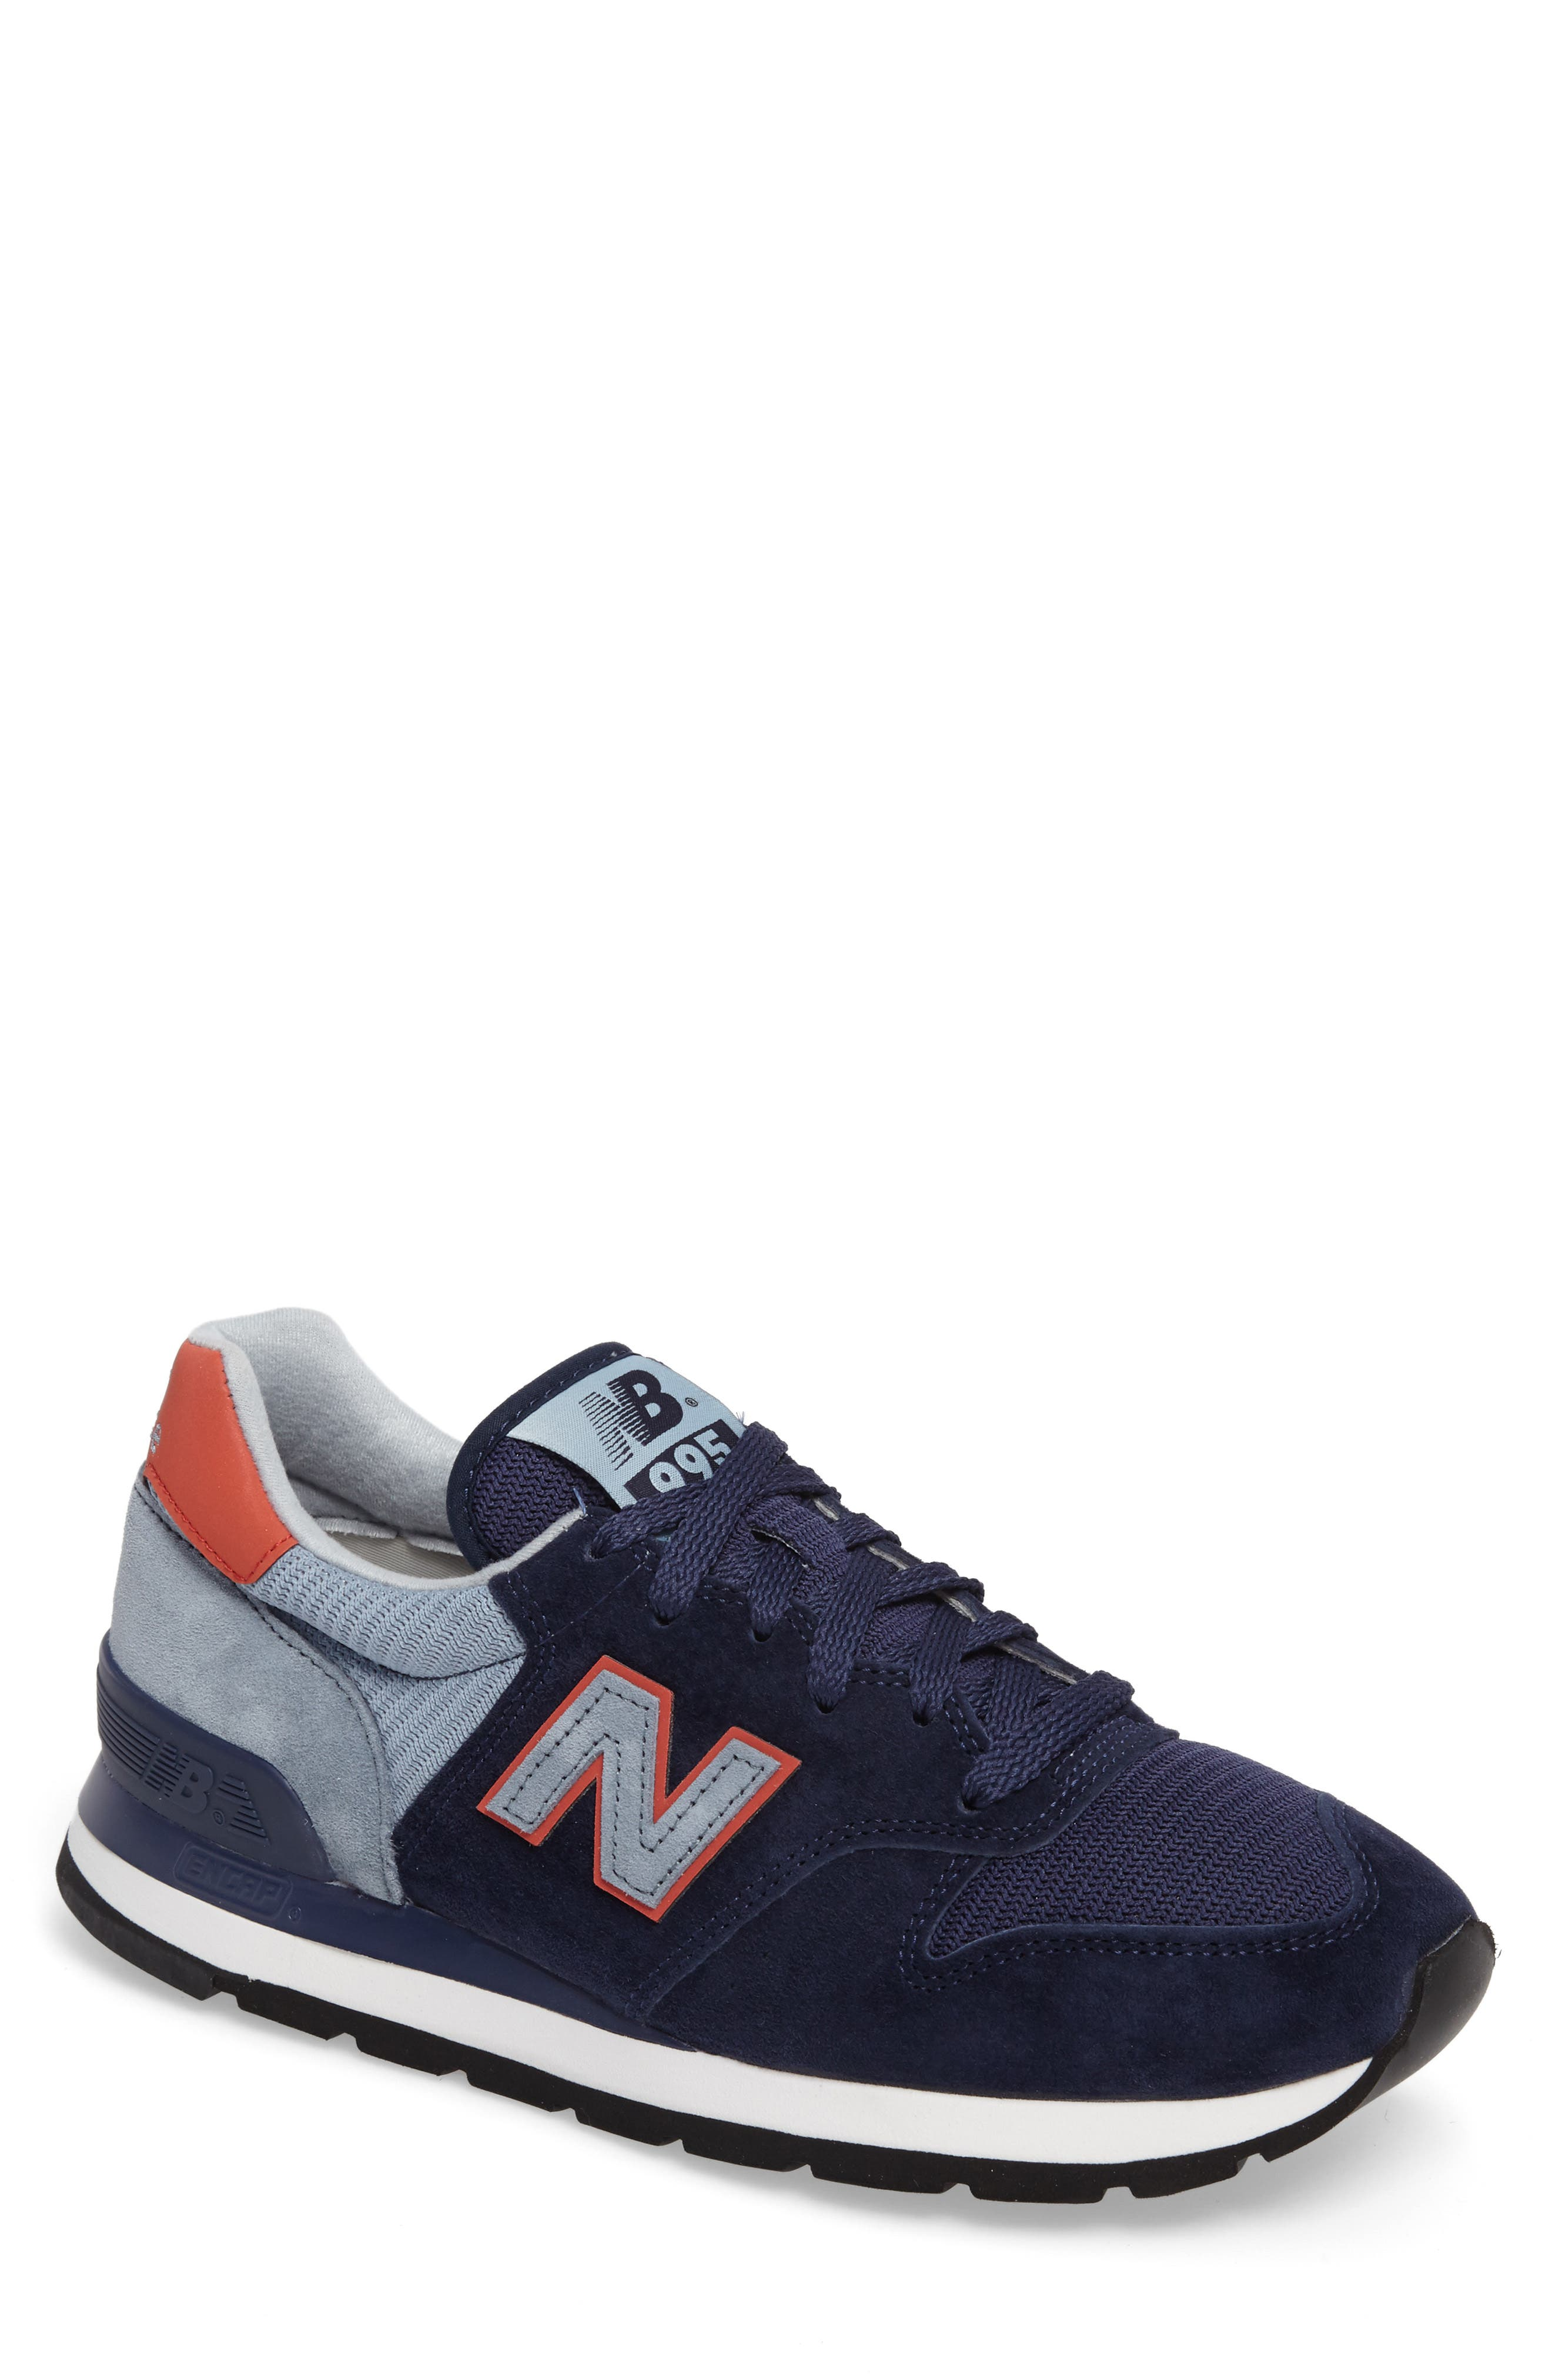 New Balance 995 Sneaker (Men)